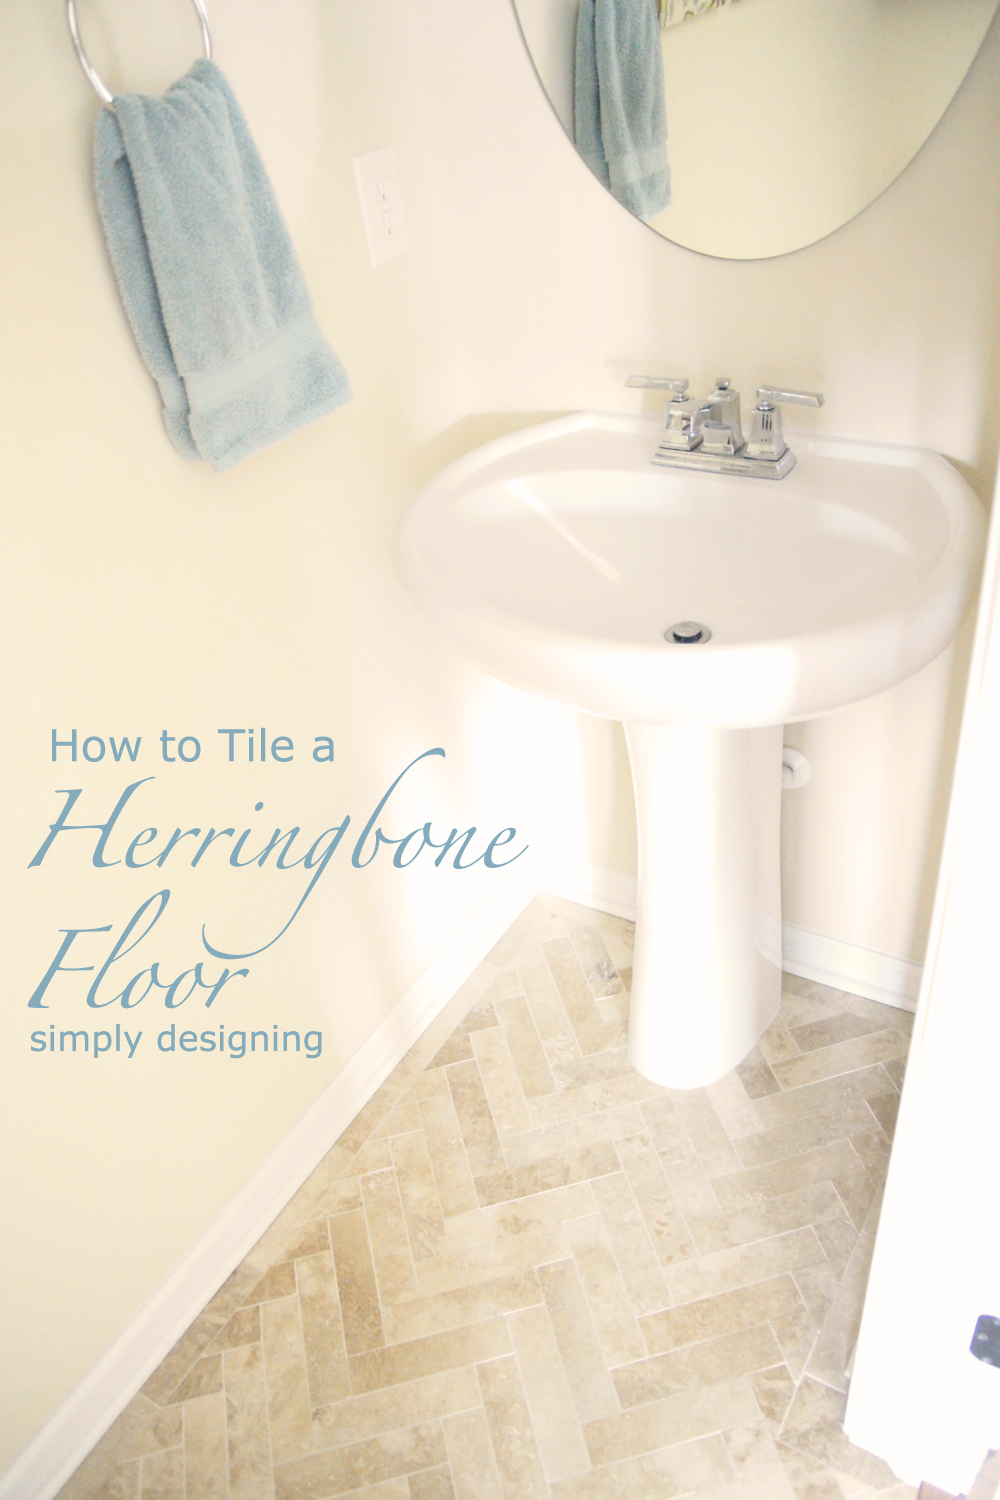 Herringbone tile floors diy tile thetileshop thetileshop how to install herringbone tile floors a complete tutorial for laying tile flooring and herringbone dailygadgetfo Choice Image